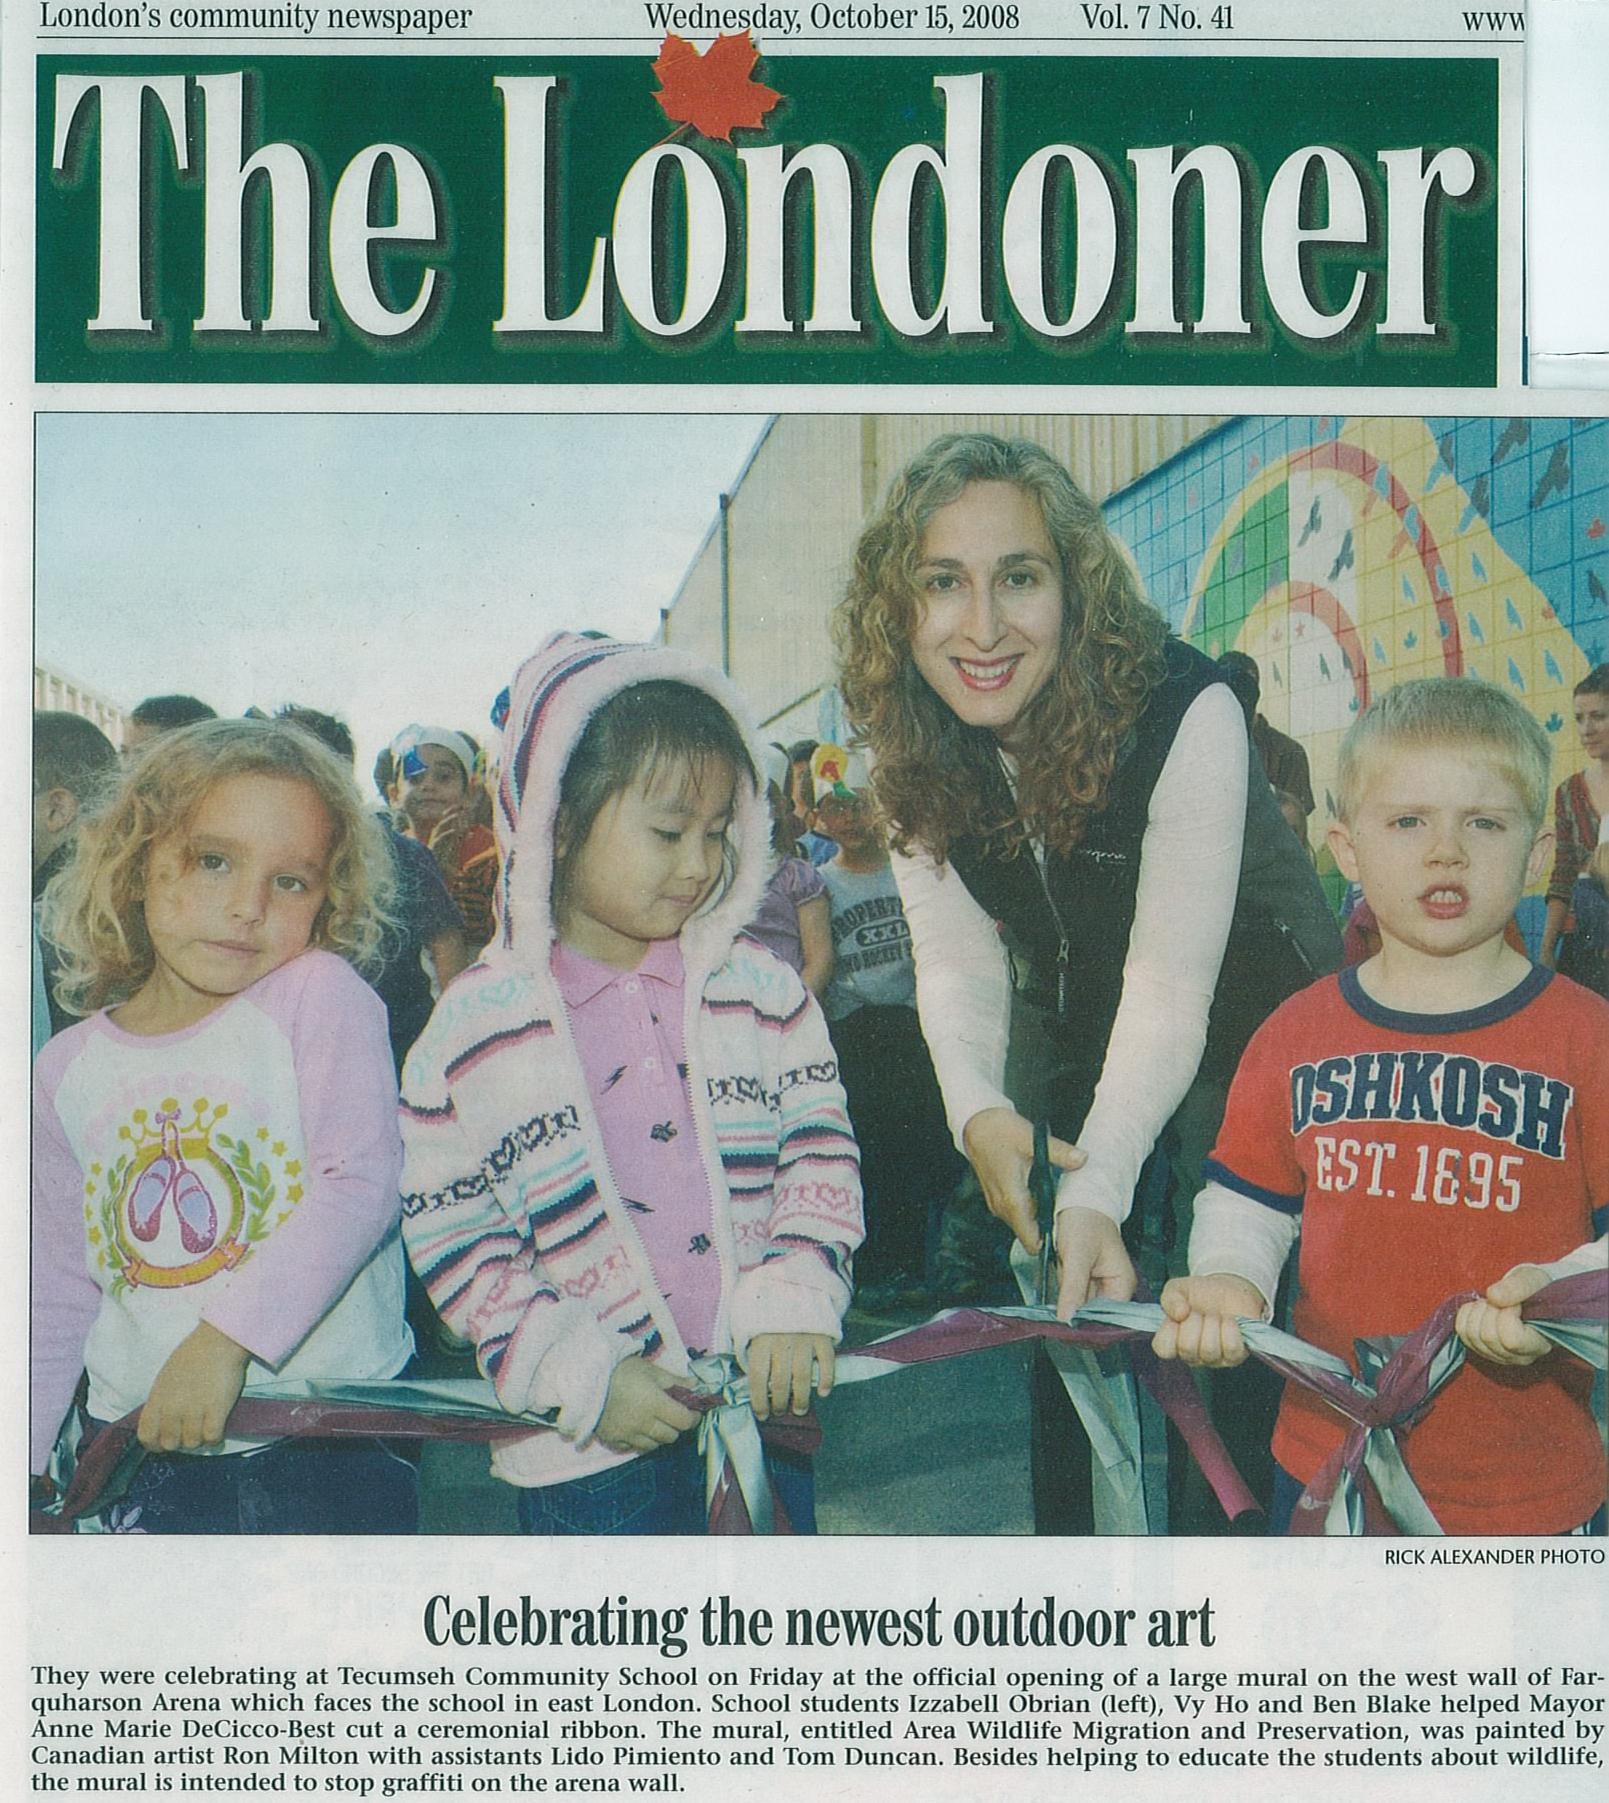 The Londoner, October 15, 2008